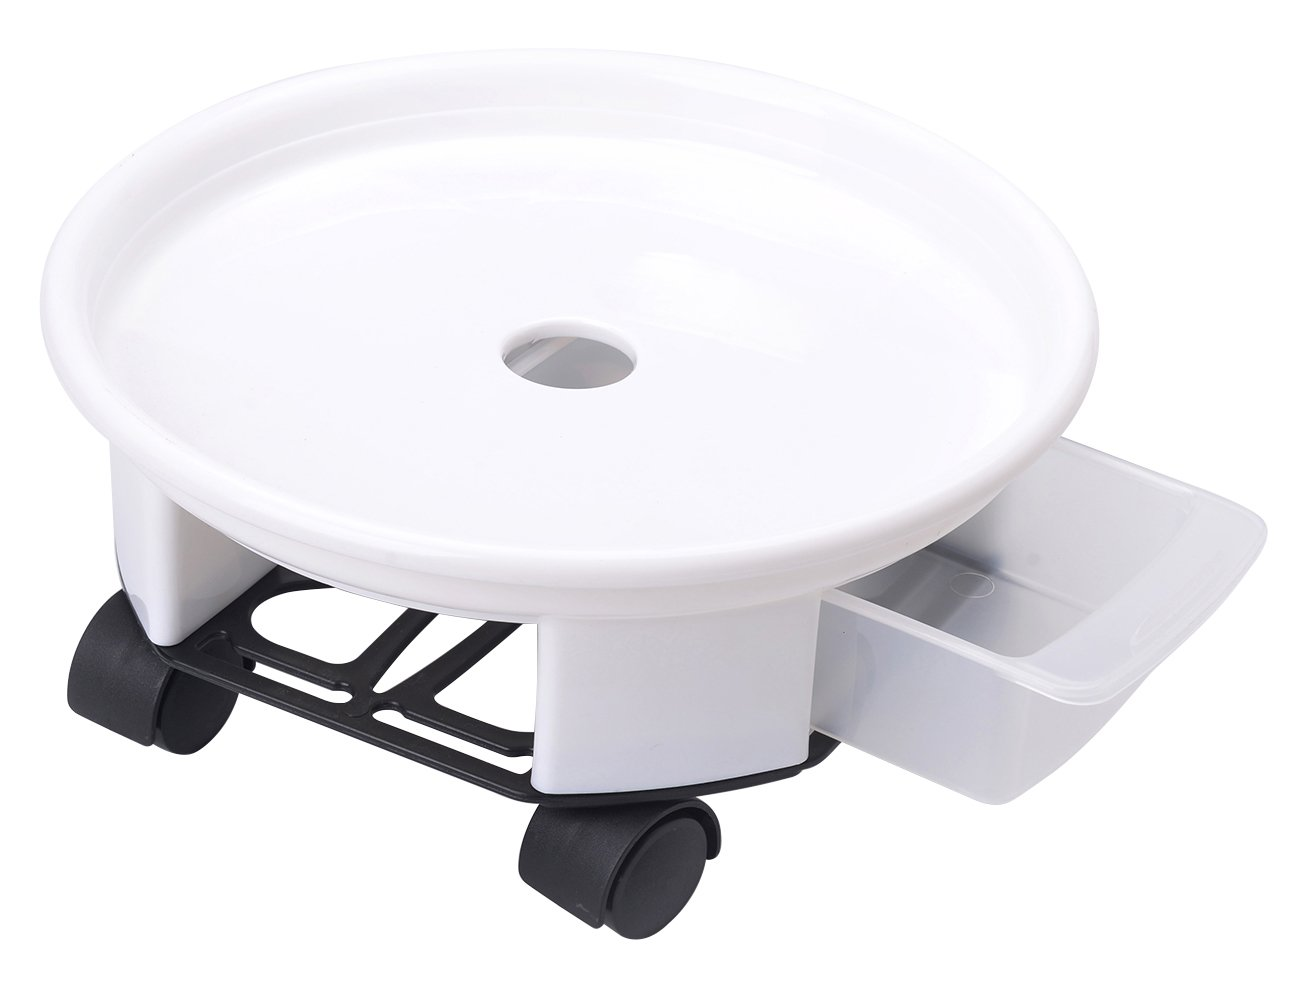 17.7'' Plant Caddy,Round Plant Dolly Trolley Saucer Moving Tray Pallet with Wheels and a Water Container,White,80 Count by Zhanwang